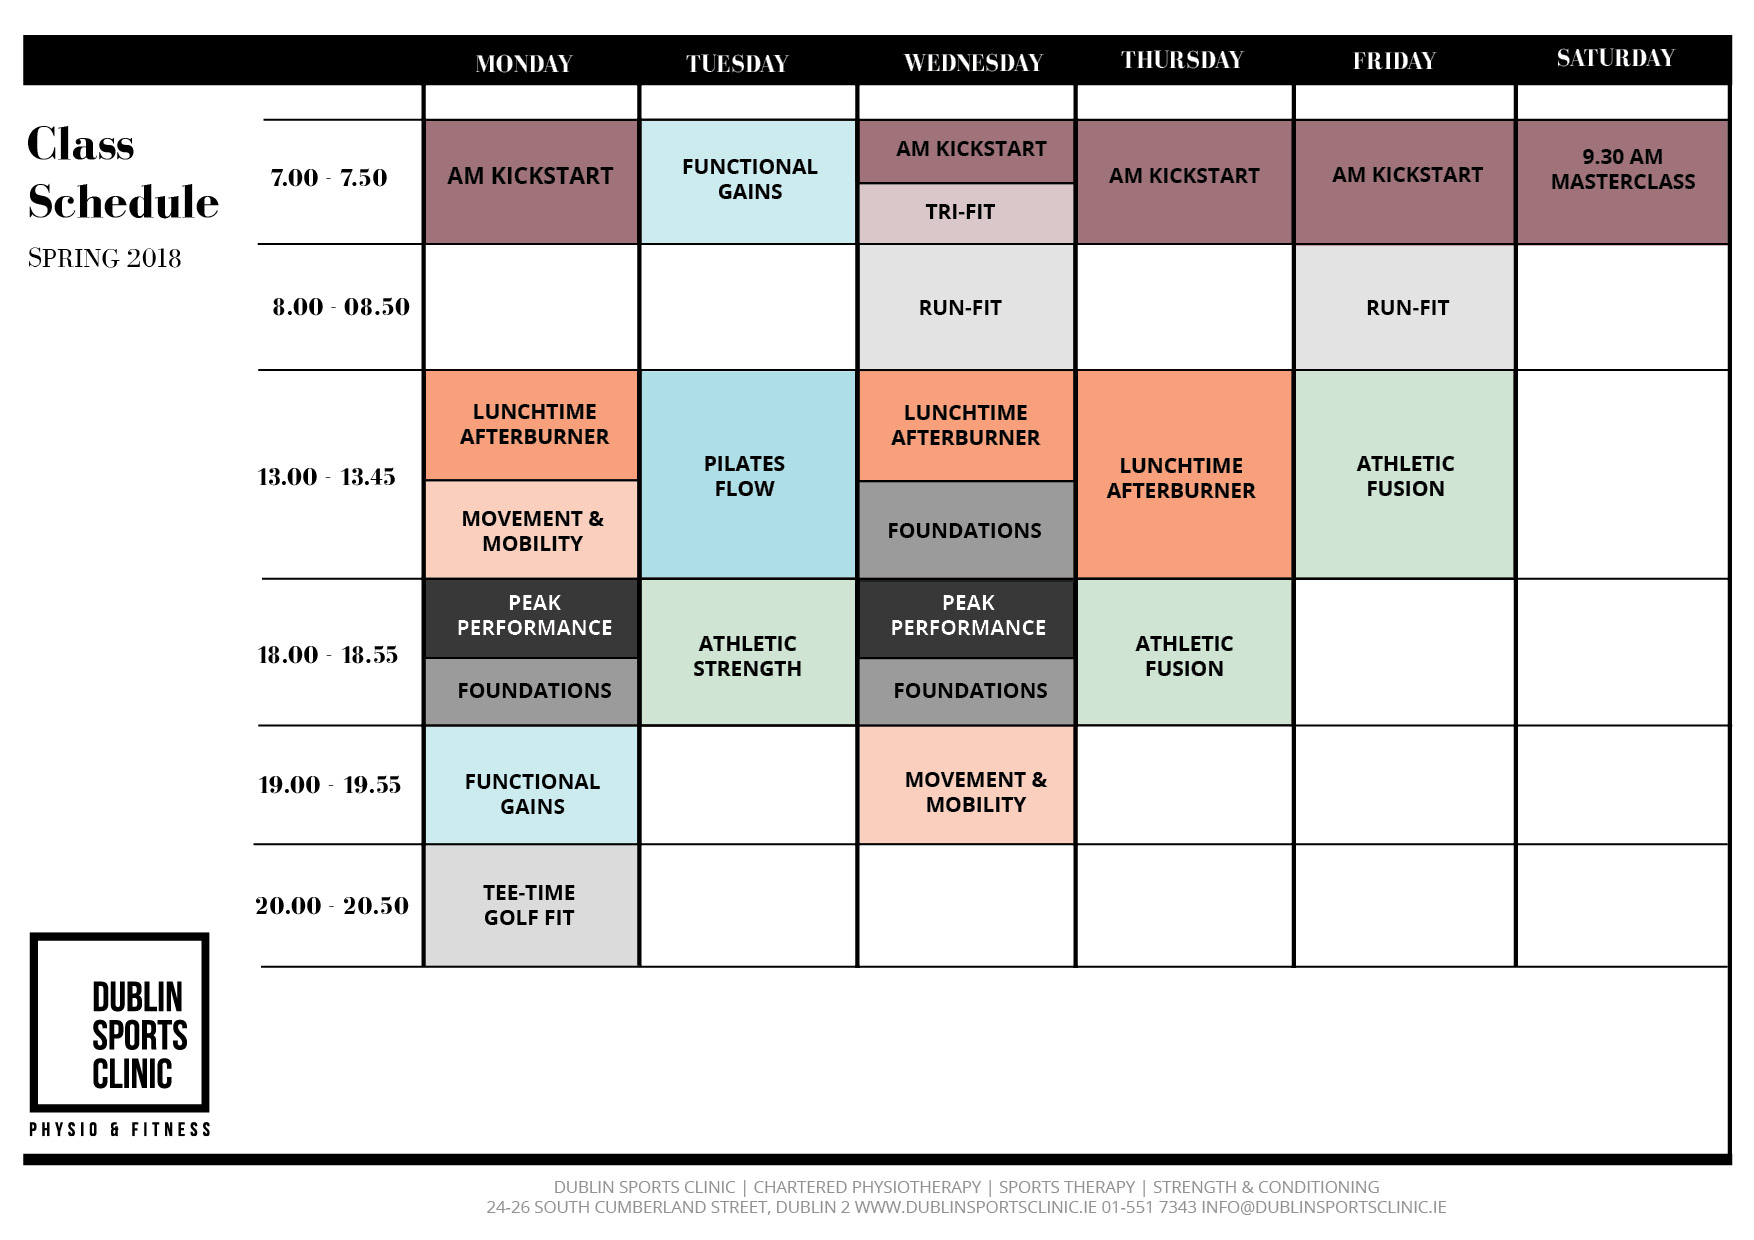 Class Timetable for Strength and Conditioning, Pilates and Mobility Group Training Classes at the Dublin Sports Clinic